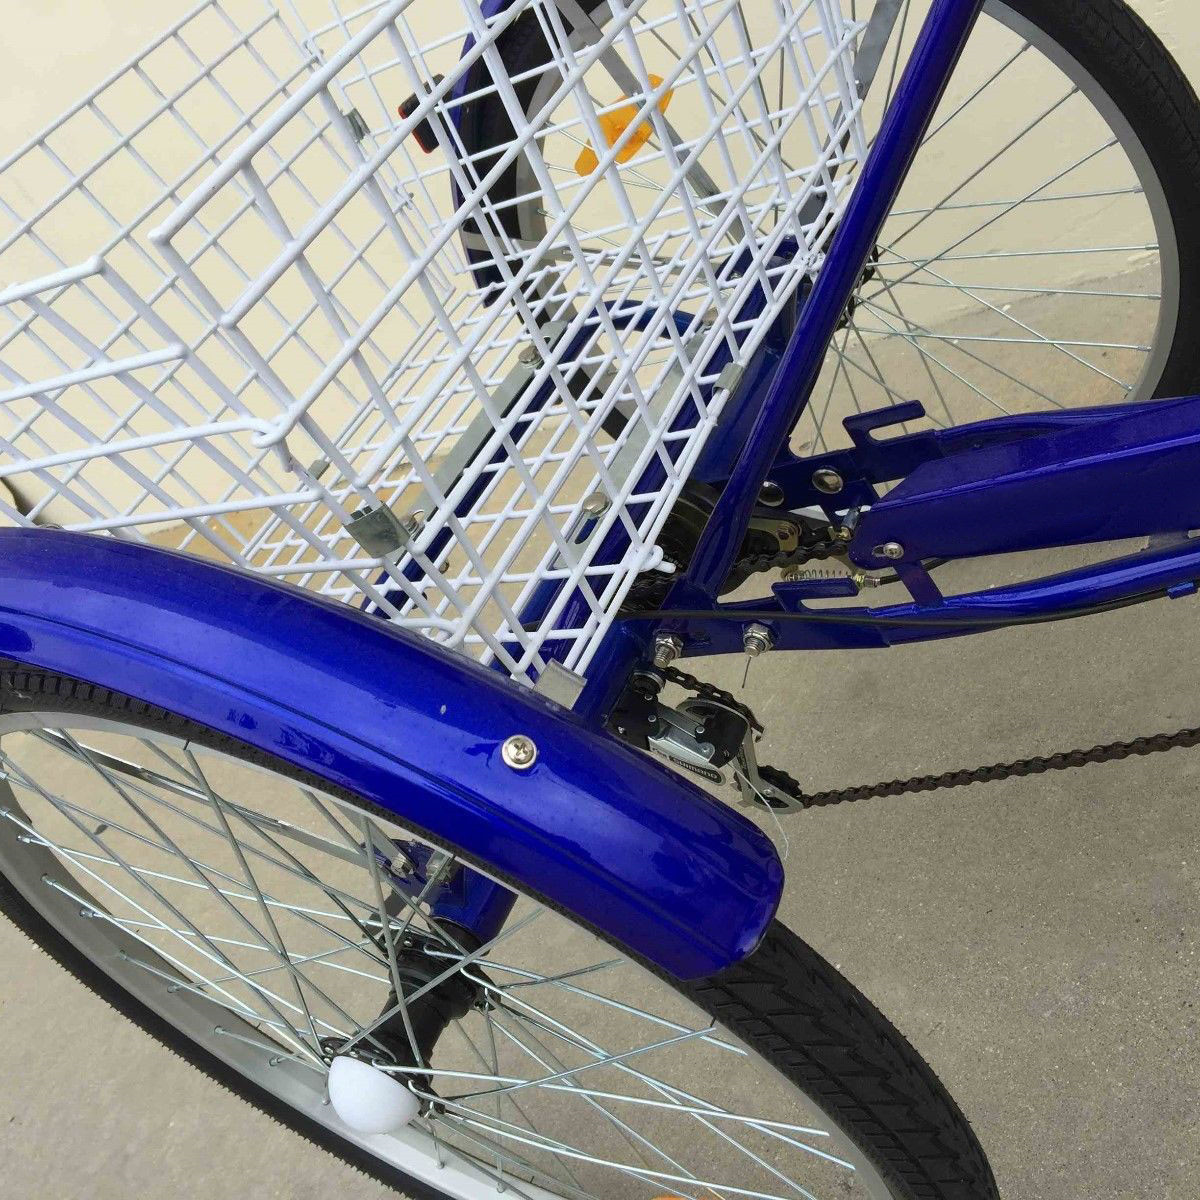 20-24-26-034-Adult-Tricycle-1-7-Speed-3-Wheel-Large-Basket-For-Shopping-Optional thumbnail 33